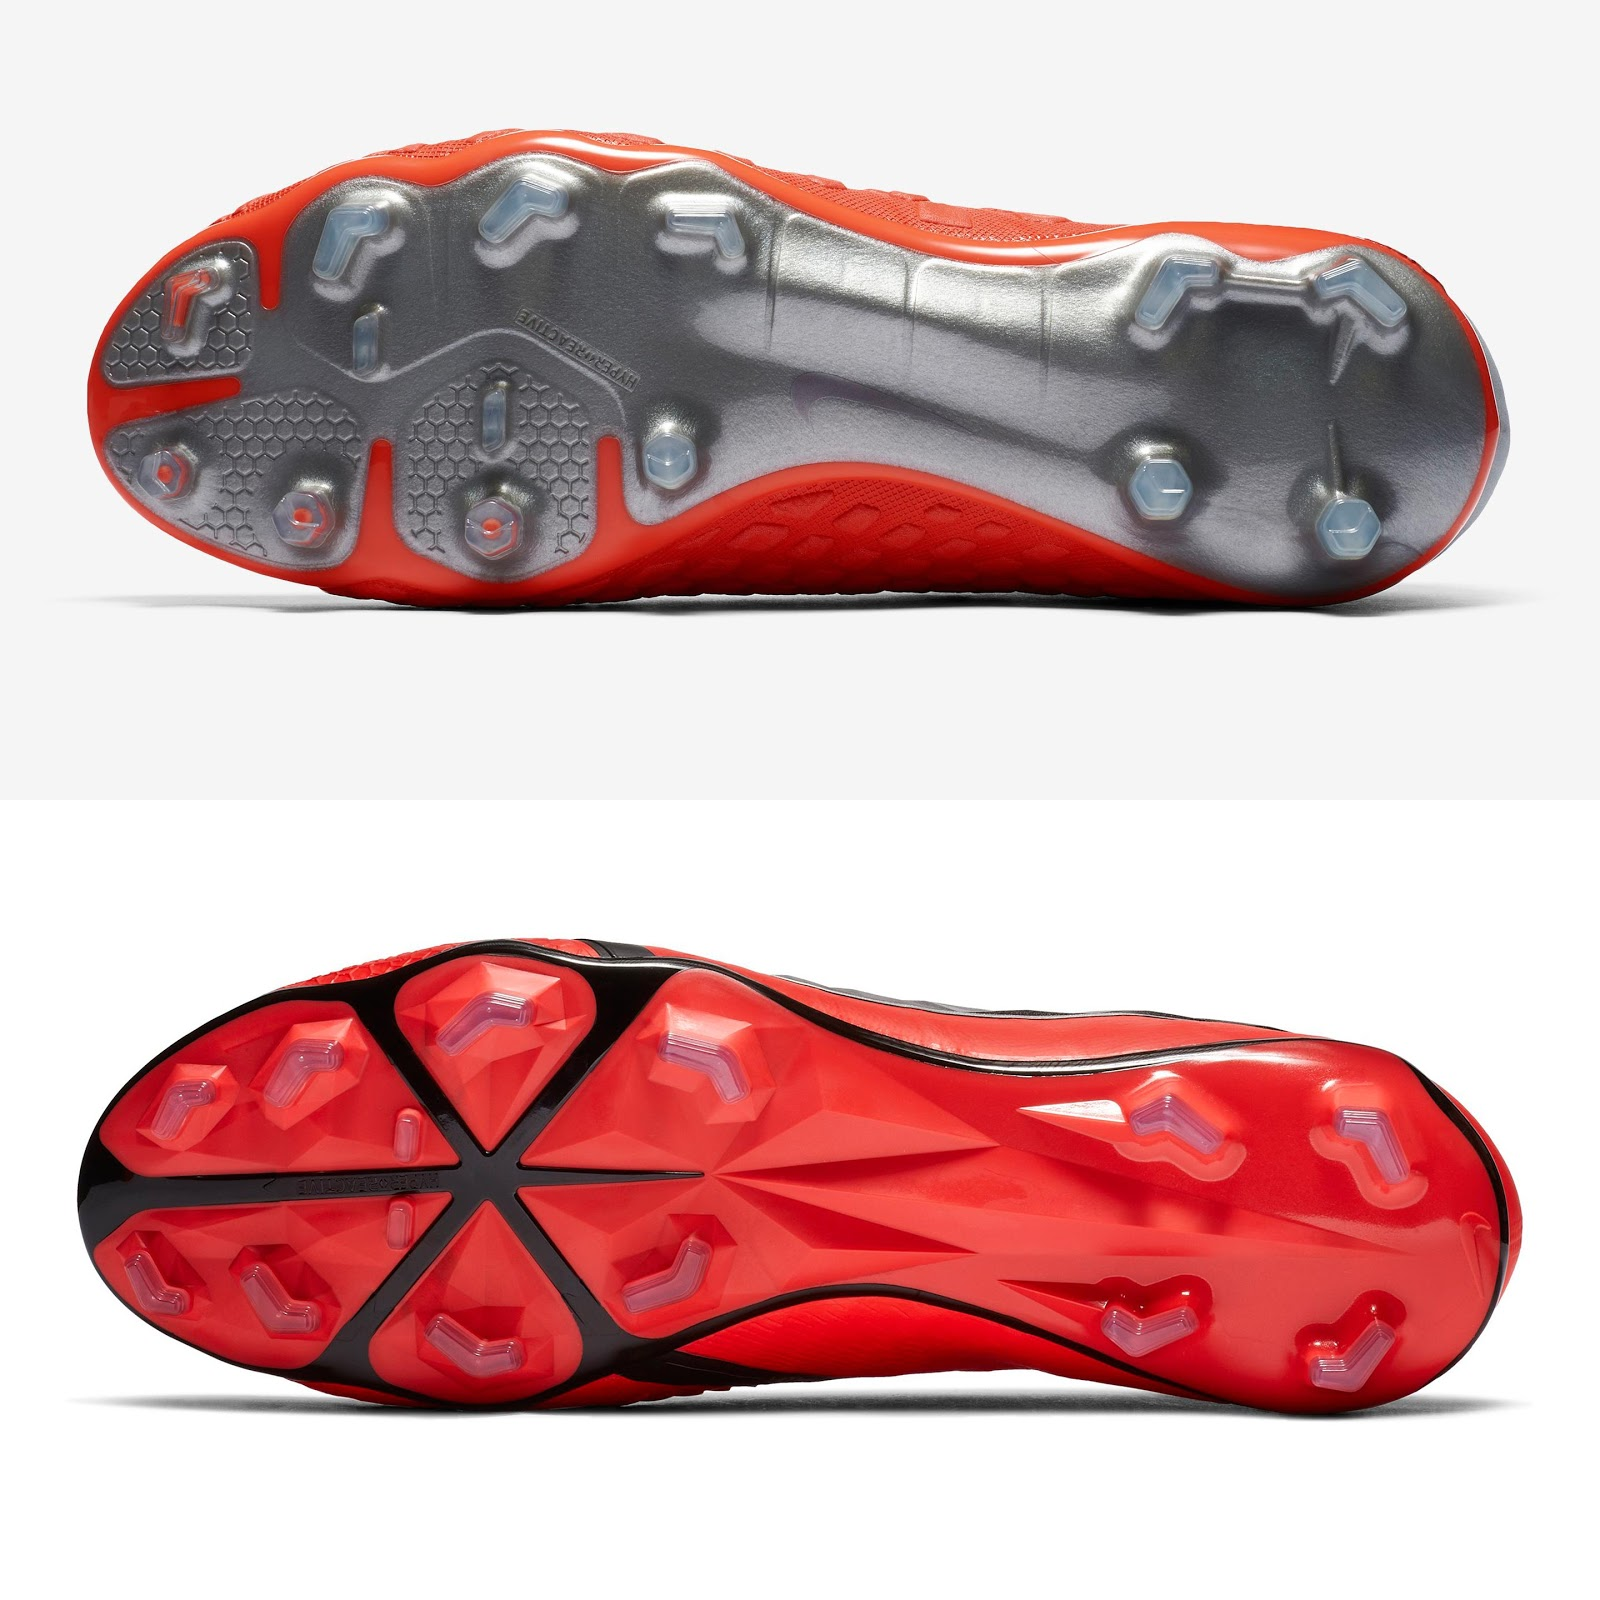 f2eb56a96 The sole plates of the Nike Hypervenom III Elite soccer cleat and the Nike  Phantom VNM soccer cleat are both made for acceleration, agility and speed.